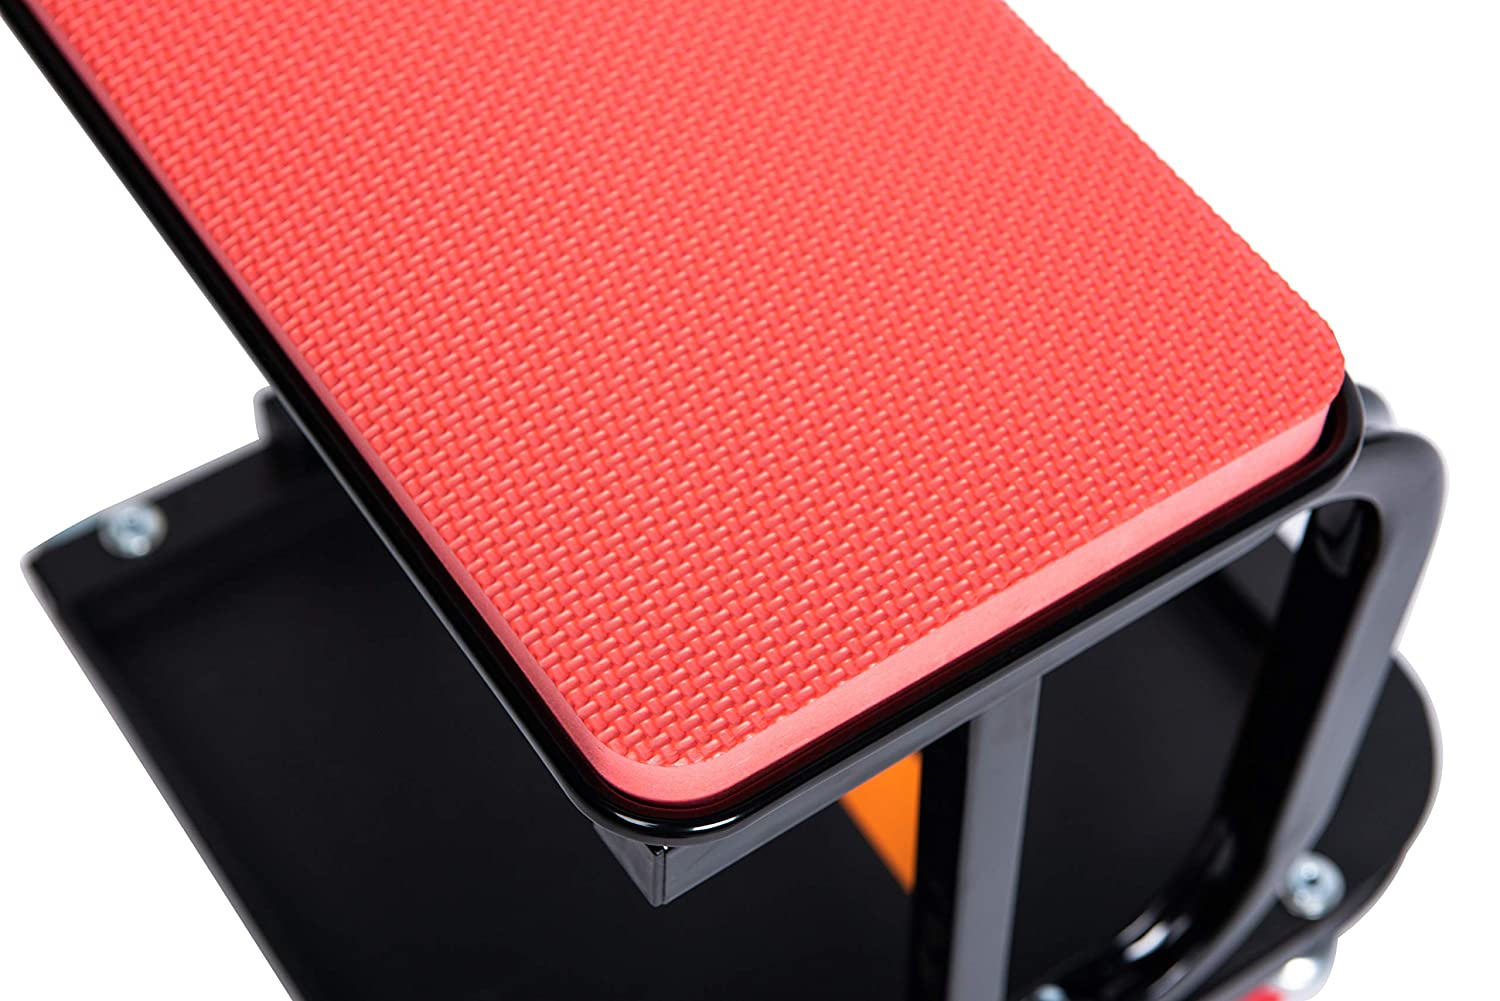 Red RTJ 300 lbs Capacity Mechanic Roller Seat with Removeable Cushion D-Frame Rolling Stool